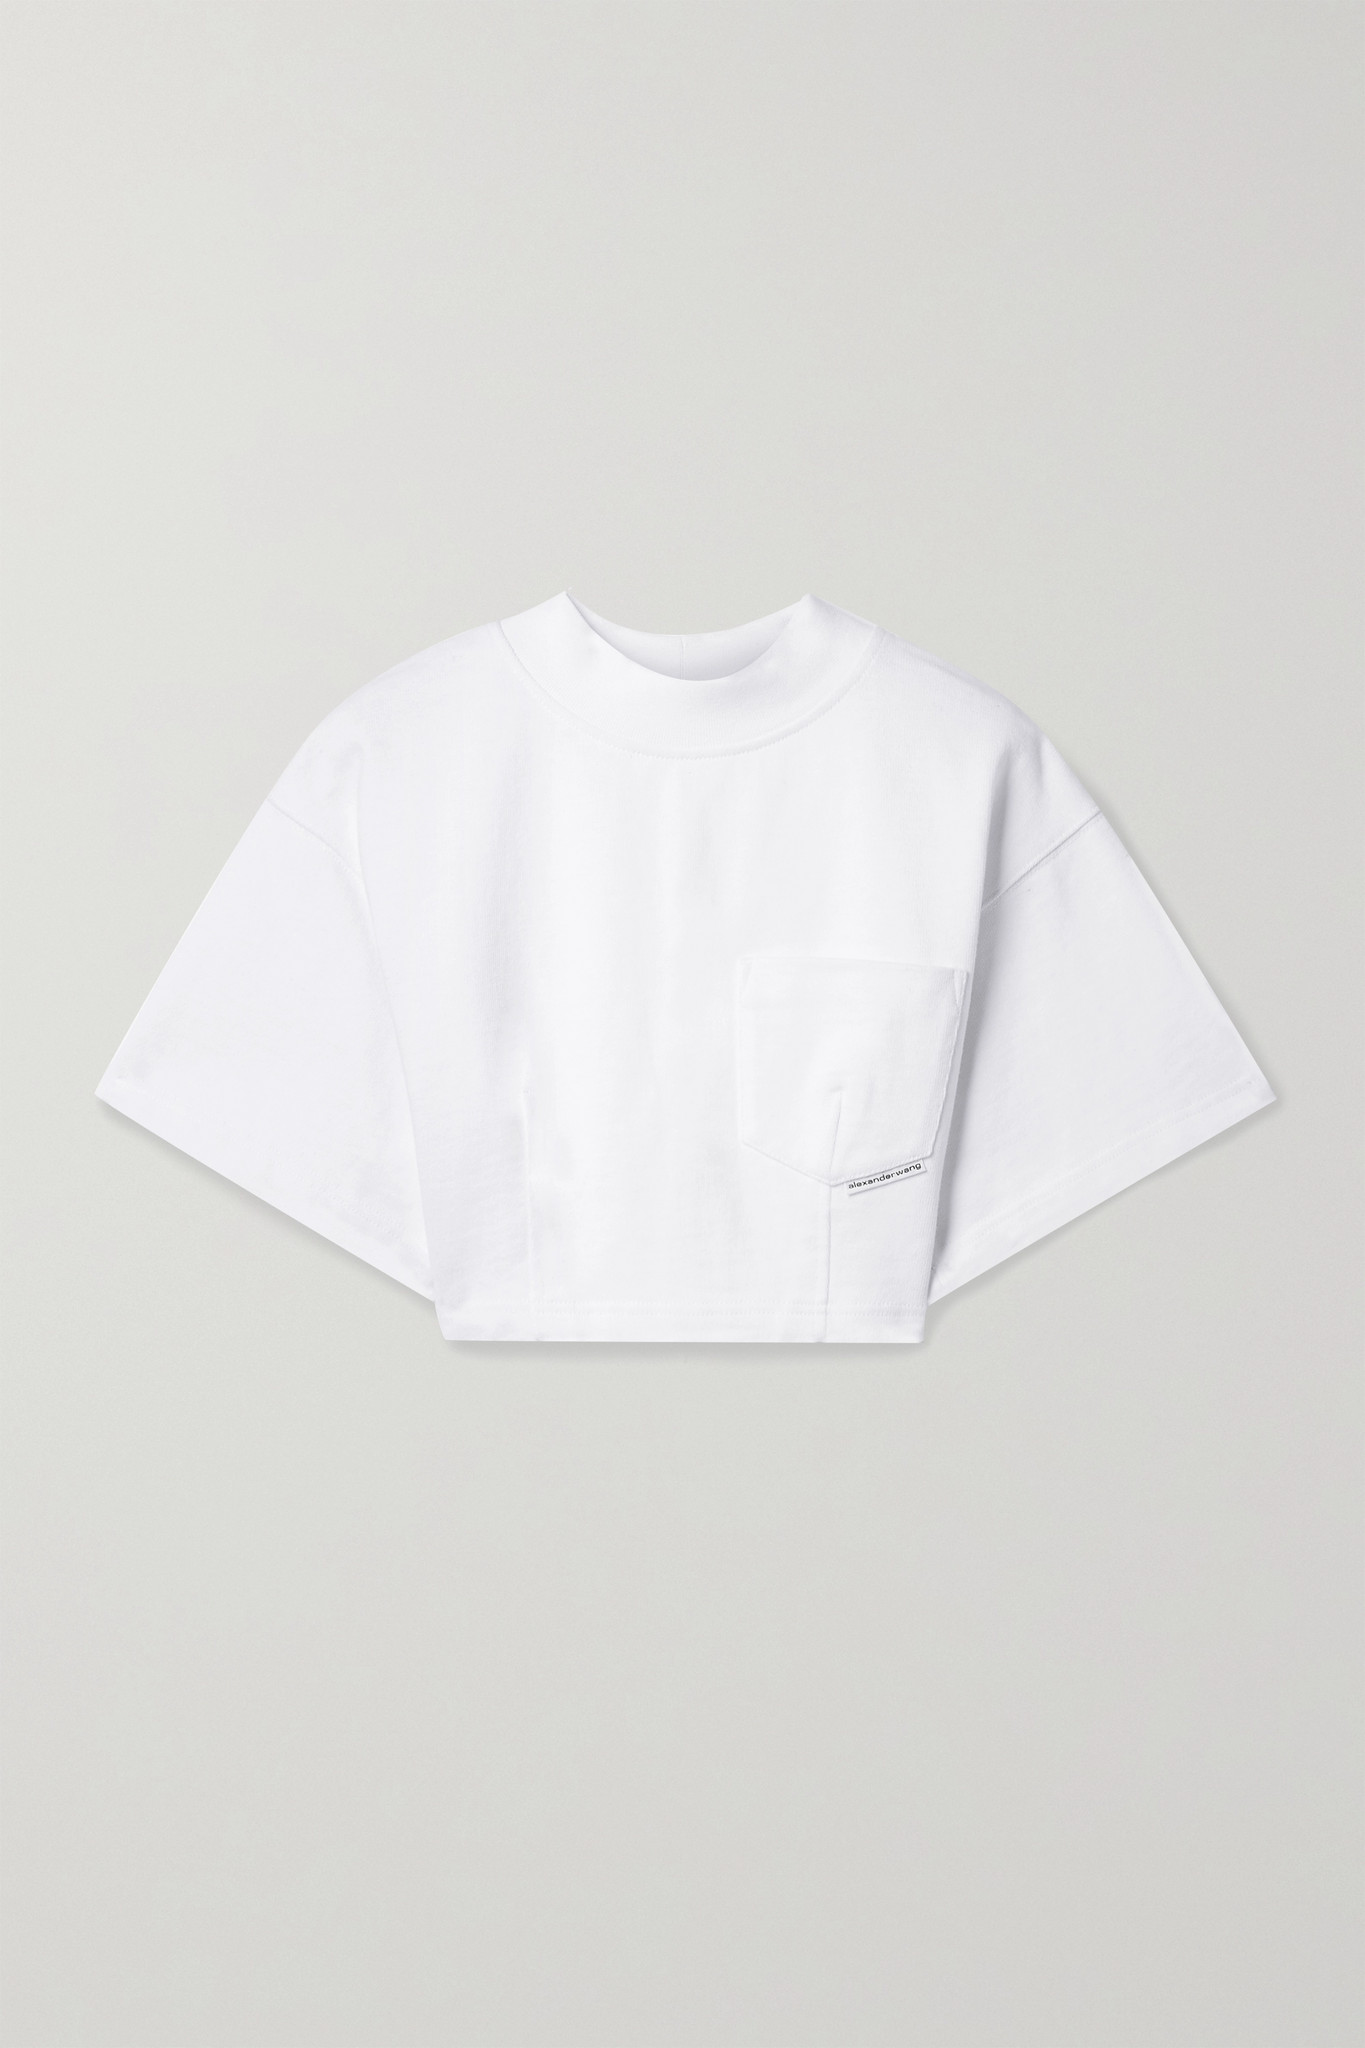 ALEXANDERWANG.T - Cropped Cotton-jersey T-shirt - White - medium